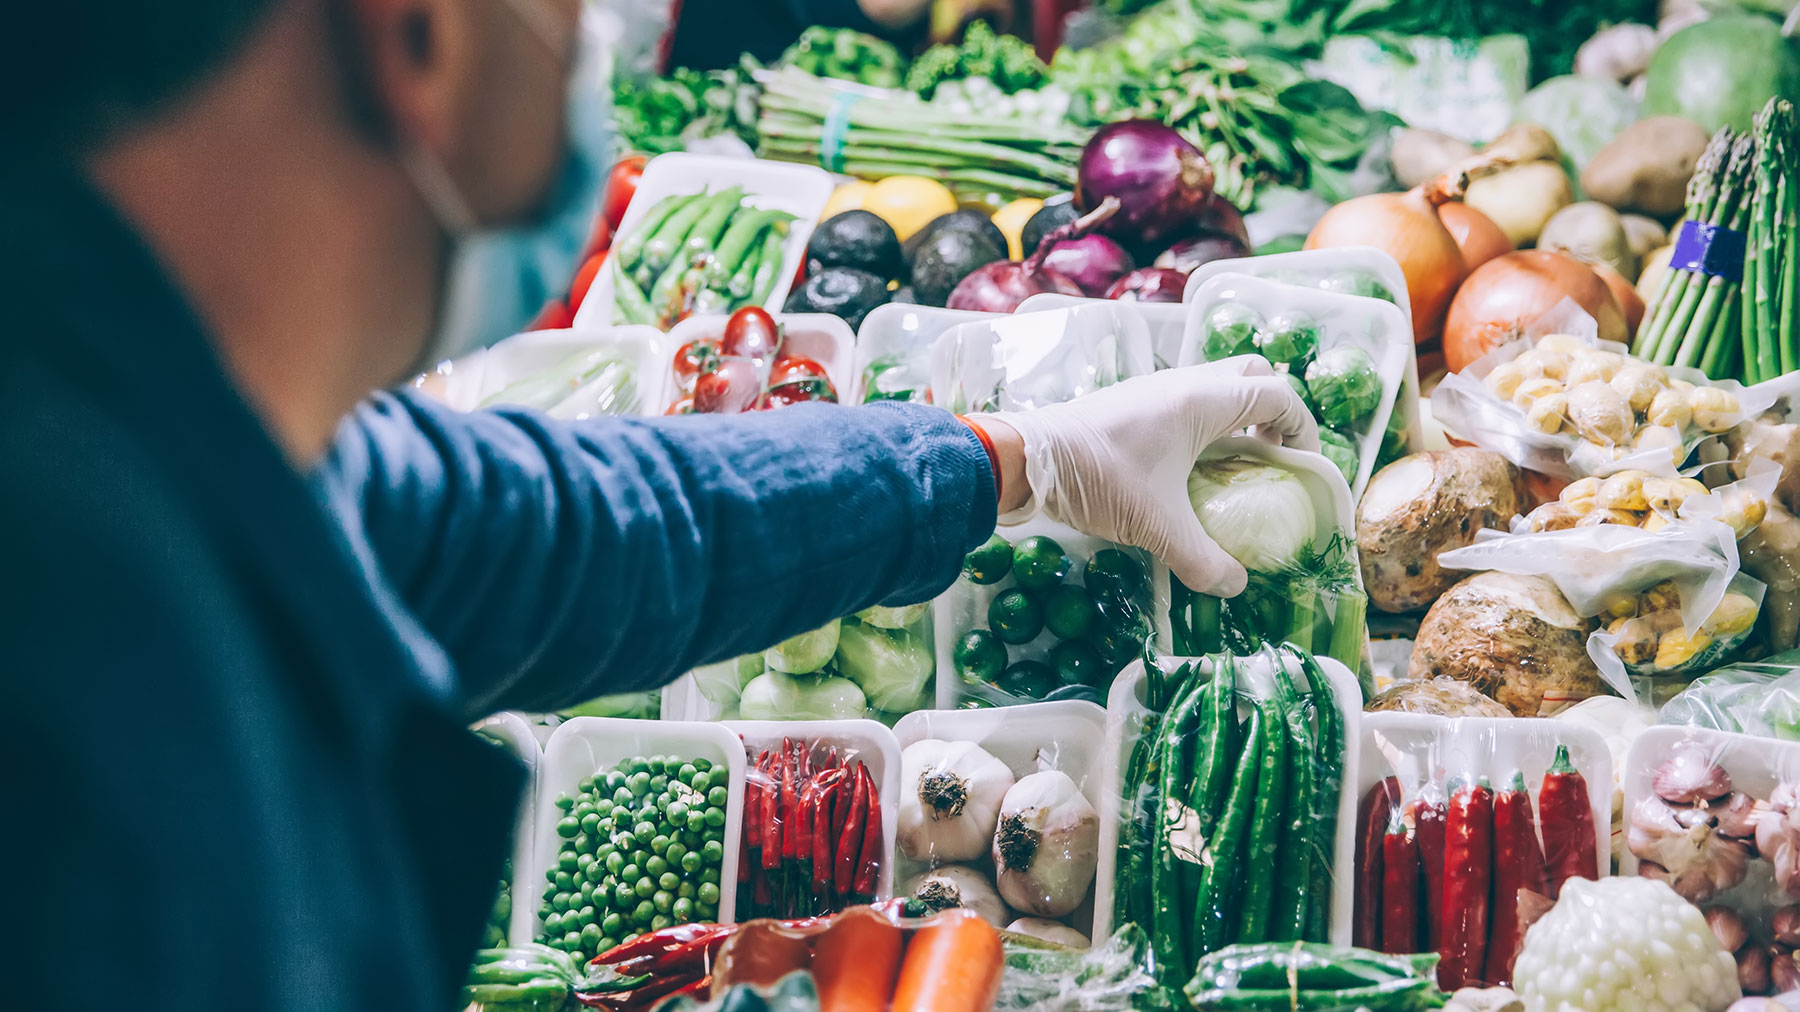 Should You Wear Gloves to the Grocery Store?